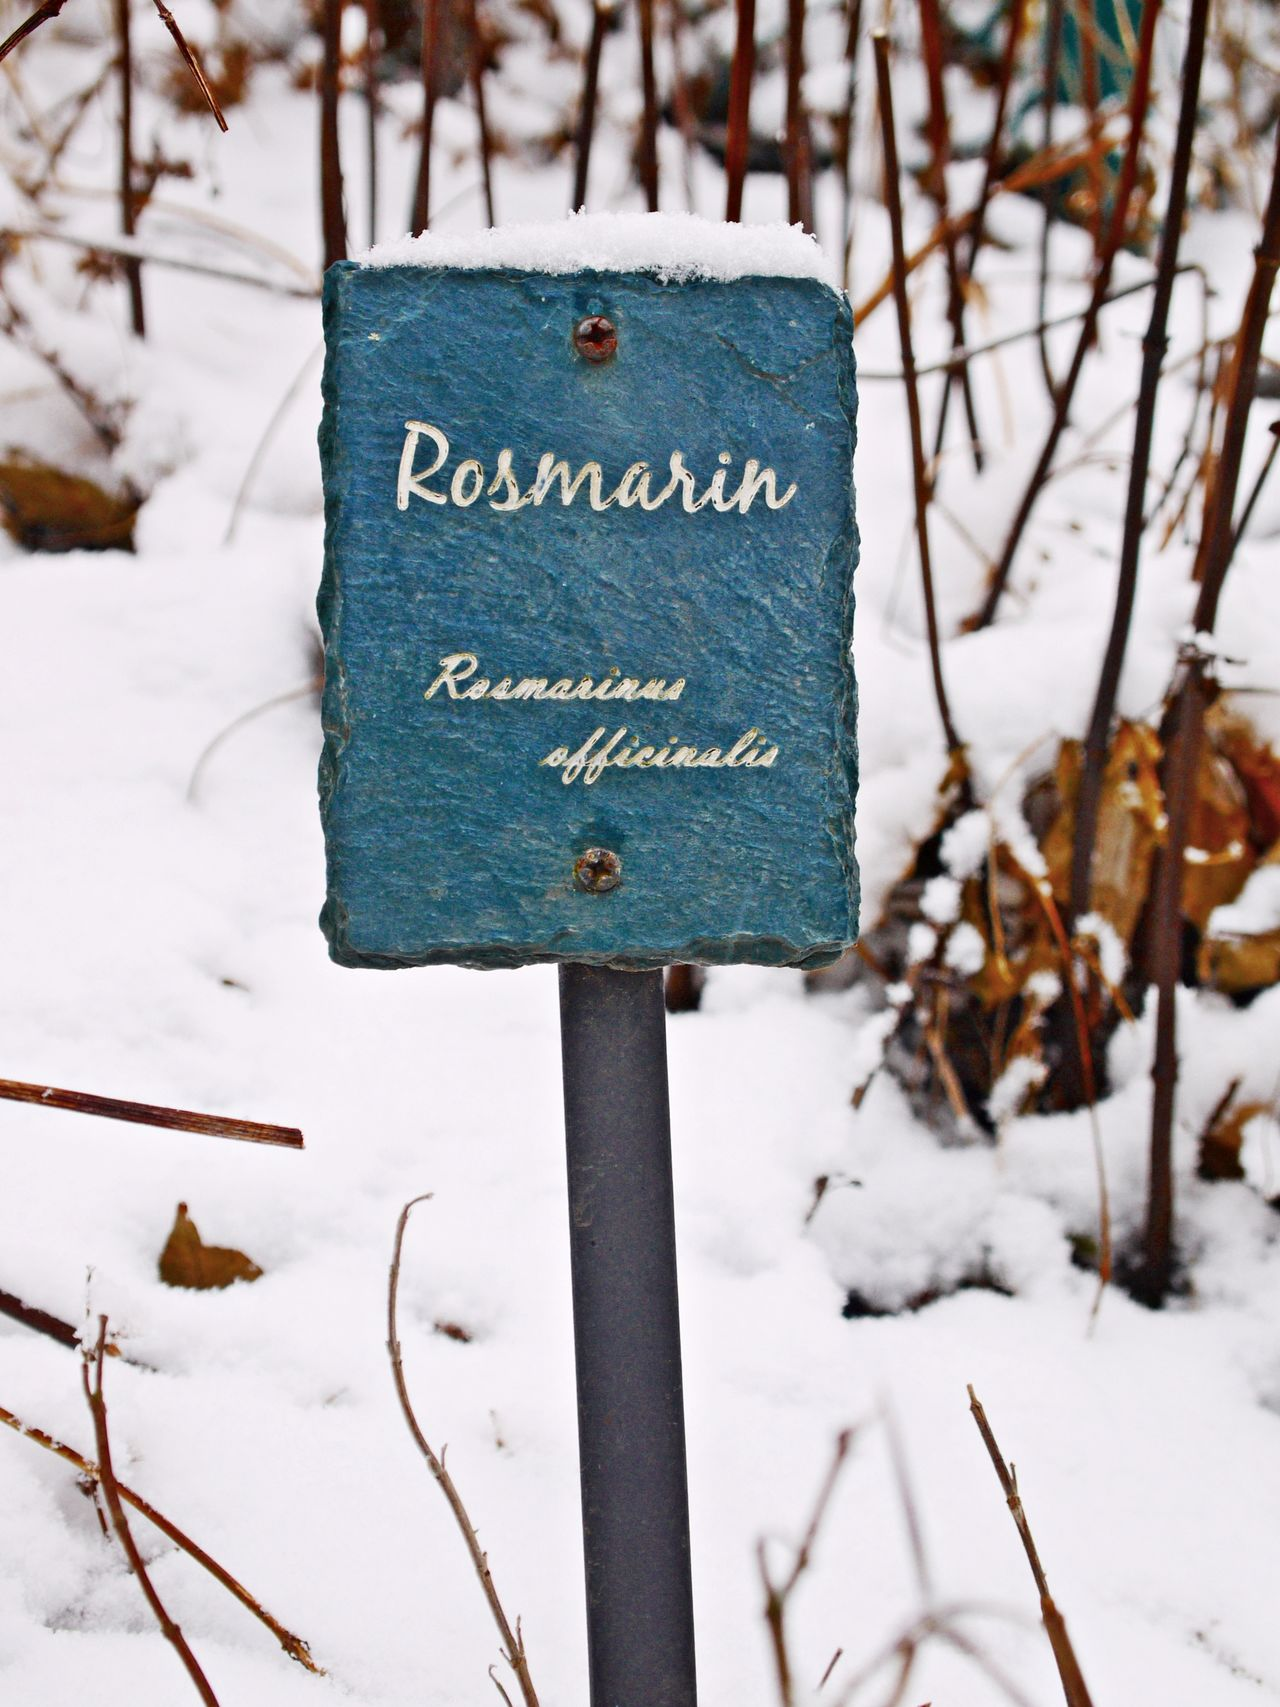 Close-up Cold Temperature Day Focus On Foreground Herbal Garden Nature No People Outdoors Rosmarin Signboard Snow Text Weather White Color Winter